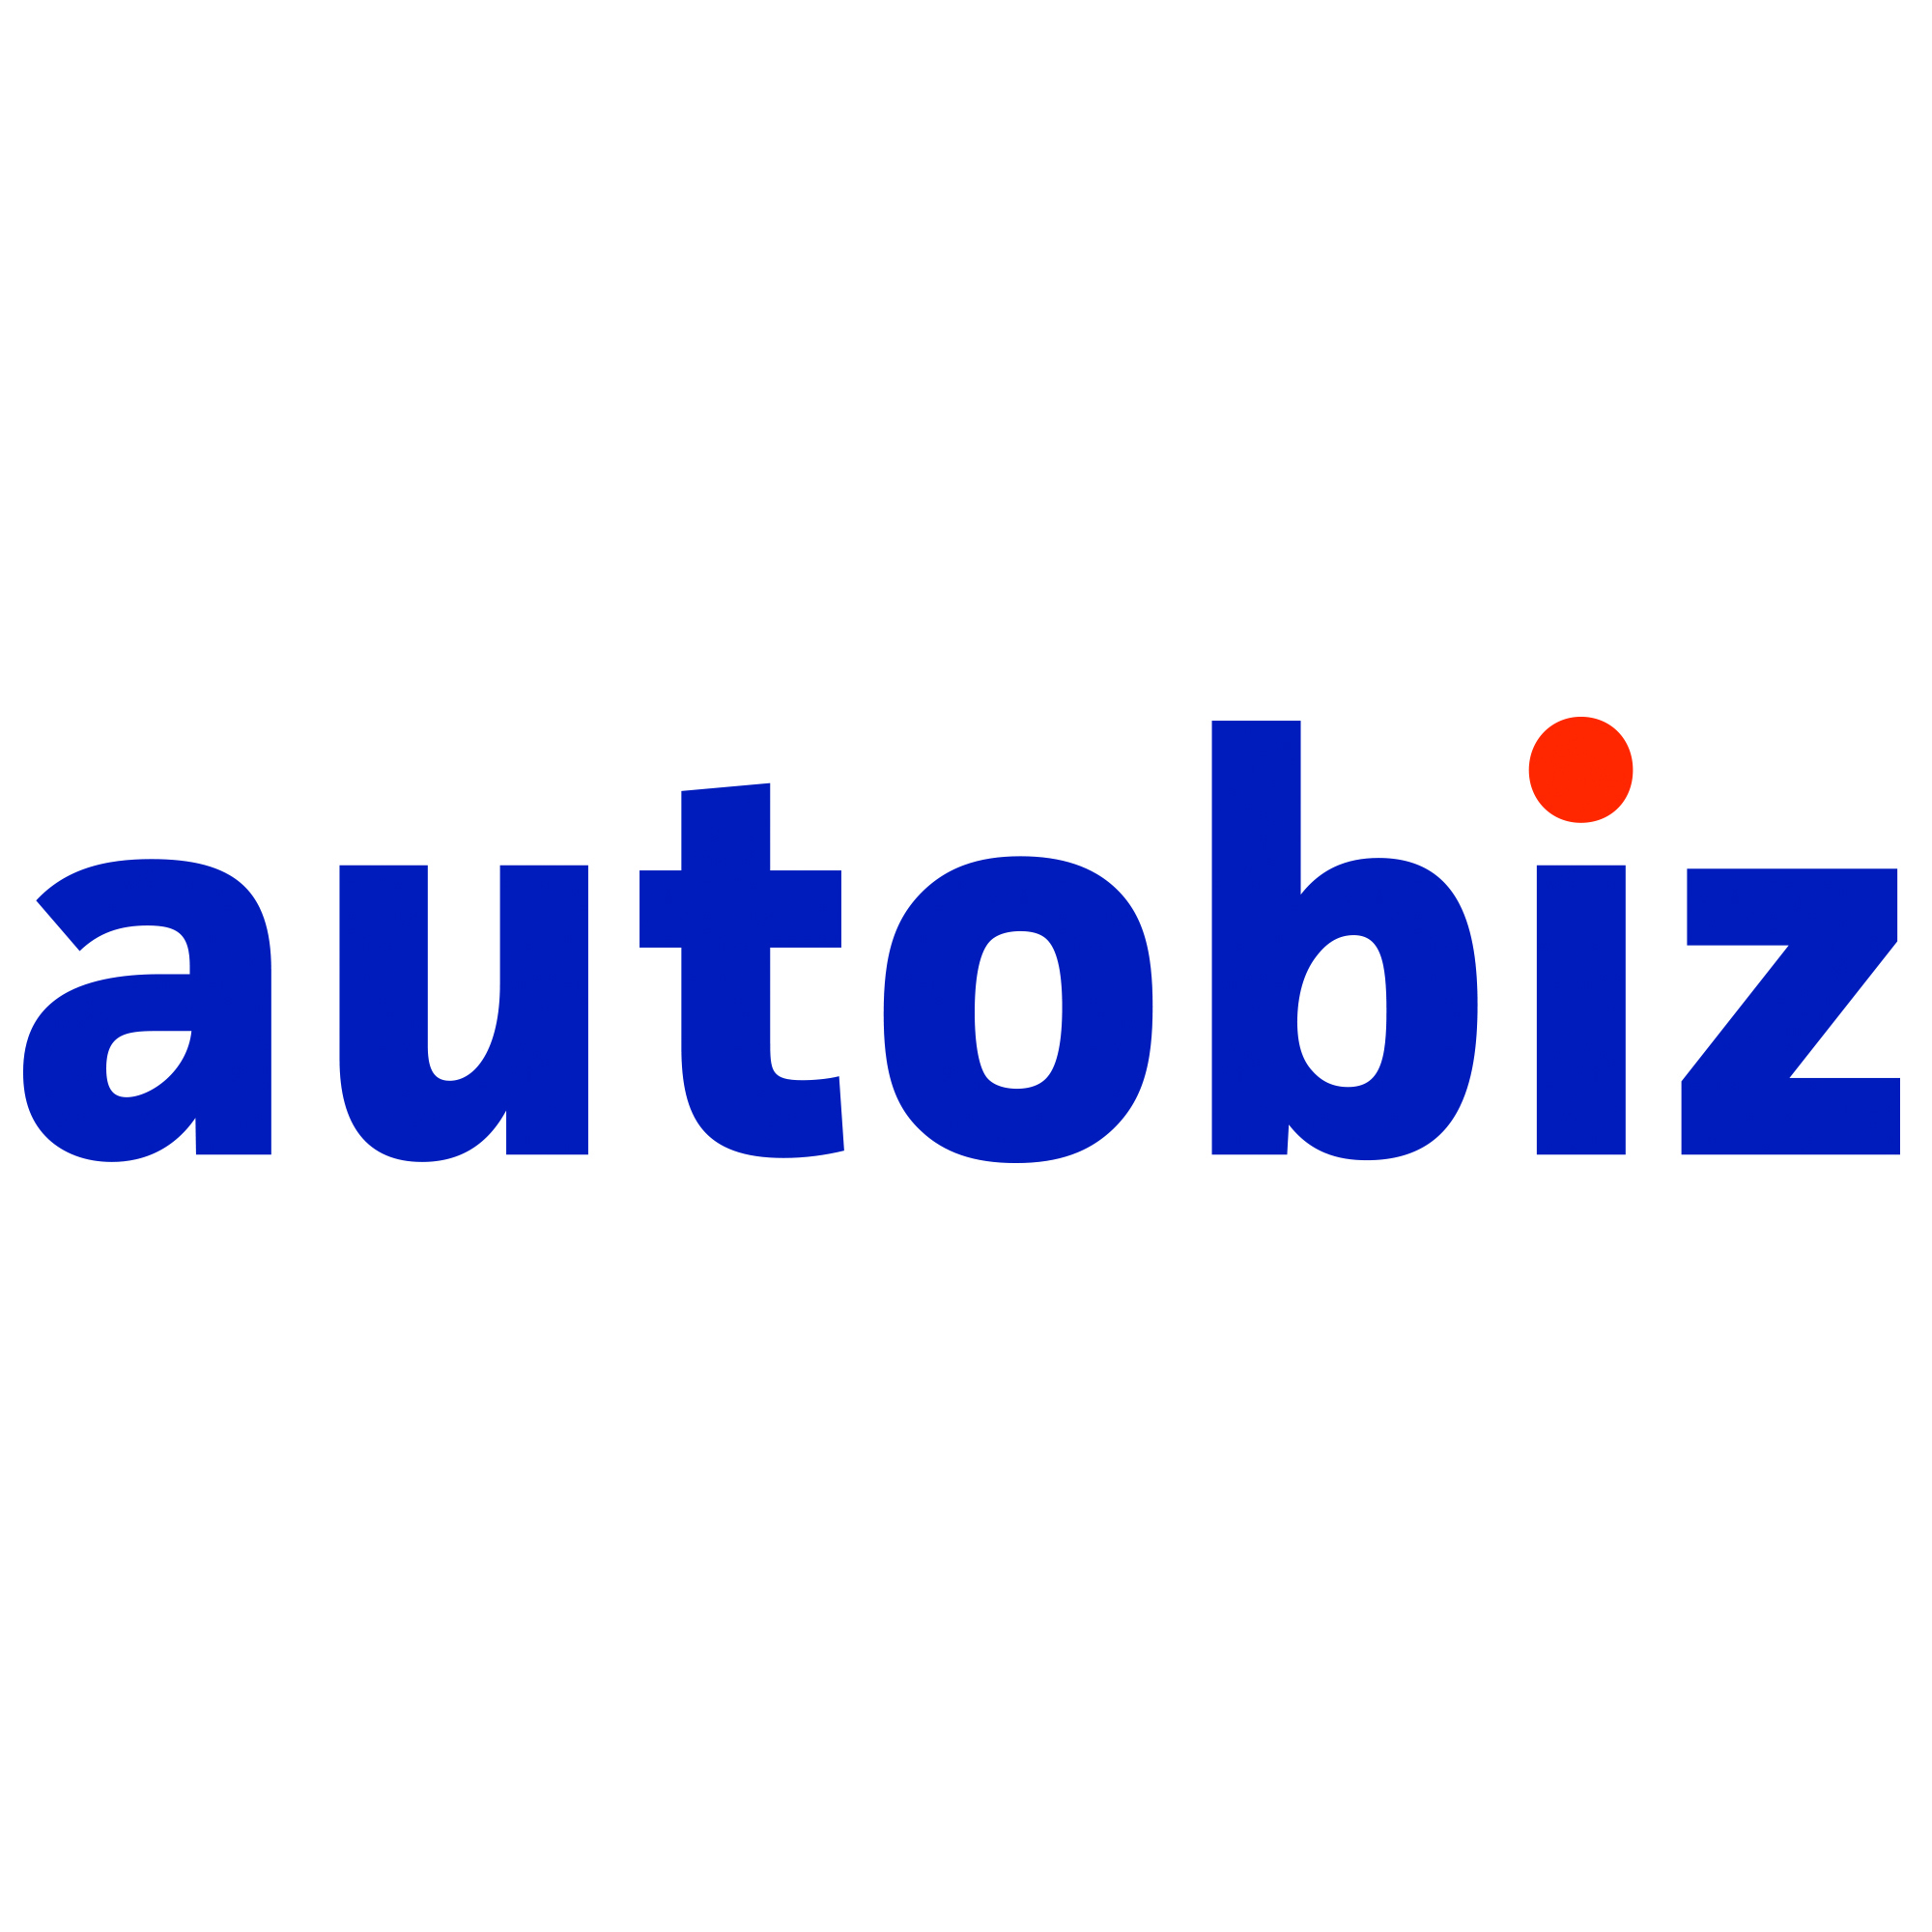 Autobiz Receives Minority Investment From The Psa Group